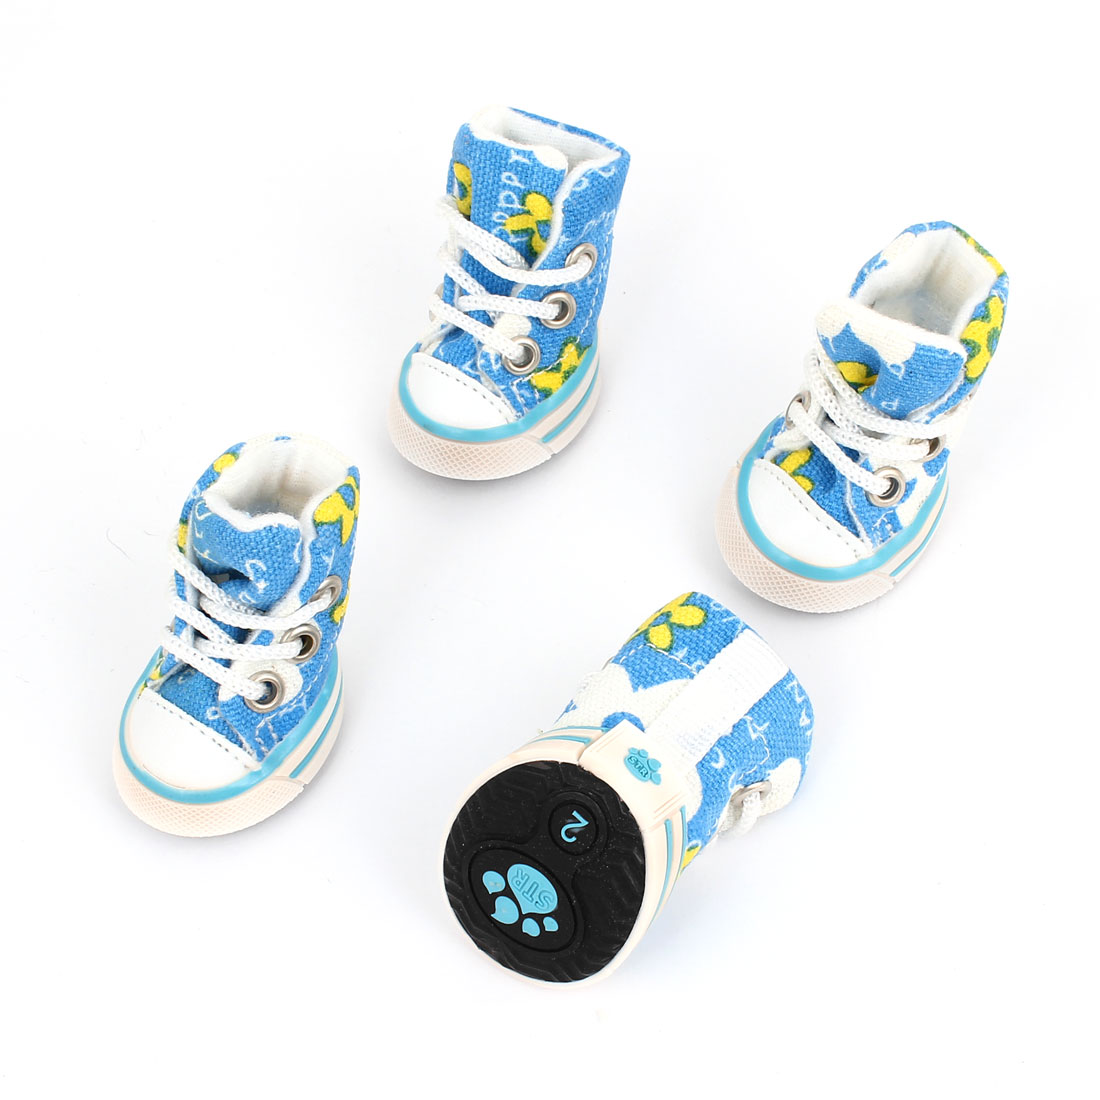 2 Pairs Nonslip Sole Flower Print Canvas Pet Dog Doggy Shoes Sneaker Cyan XXS